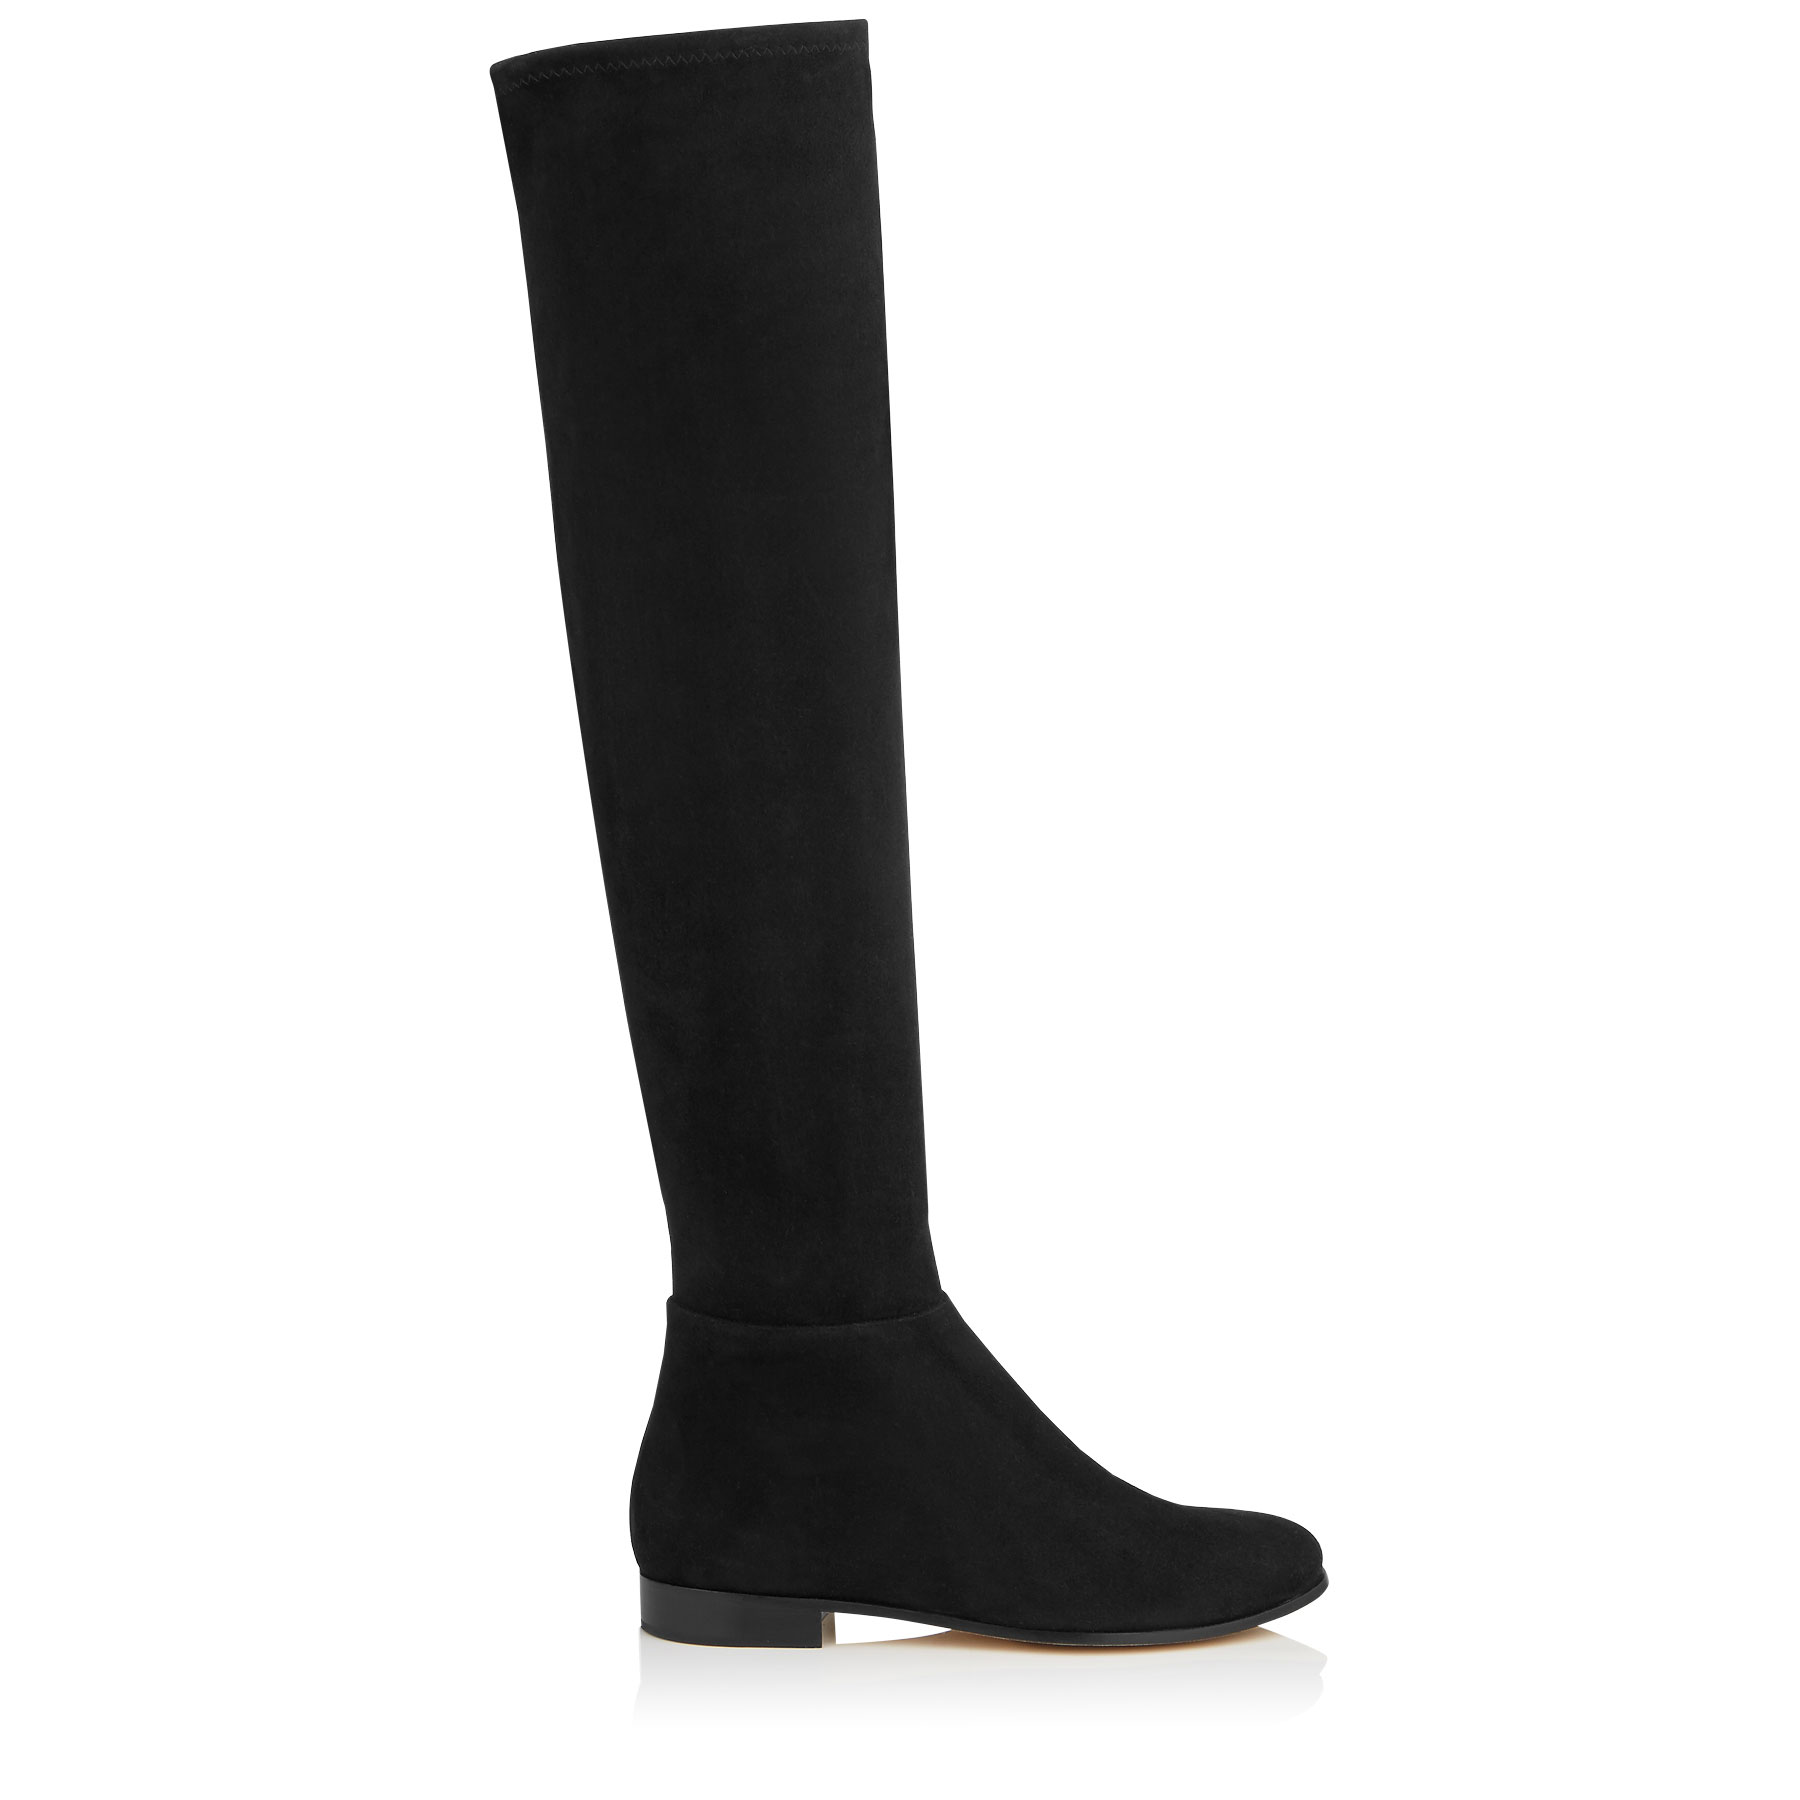 MYREN FLAT Black Stretch Suede and Suede Over the Knee Boots by Jimmy Choo